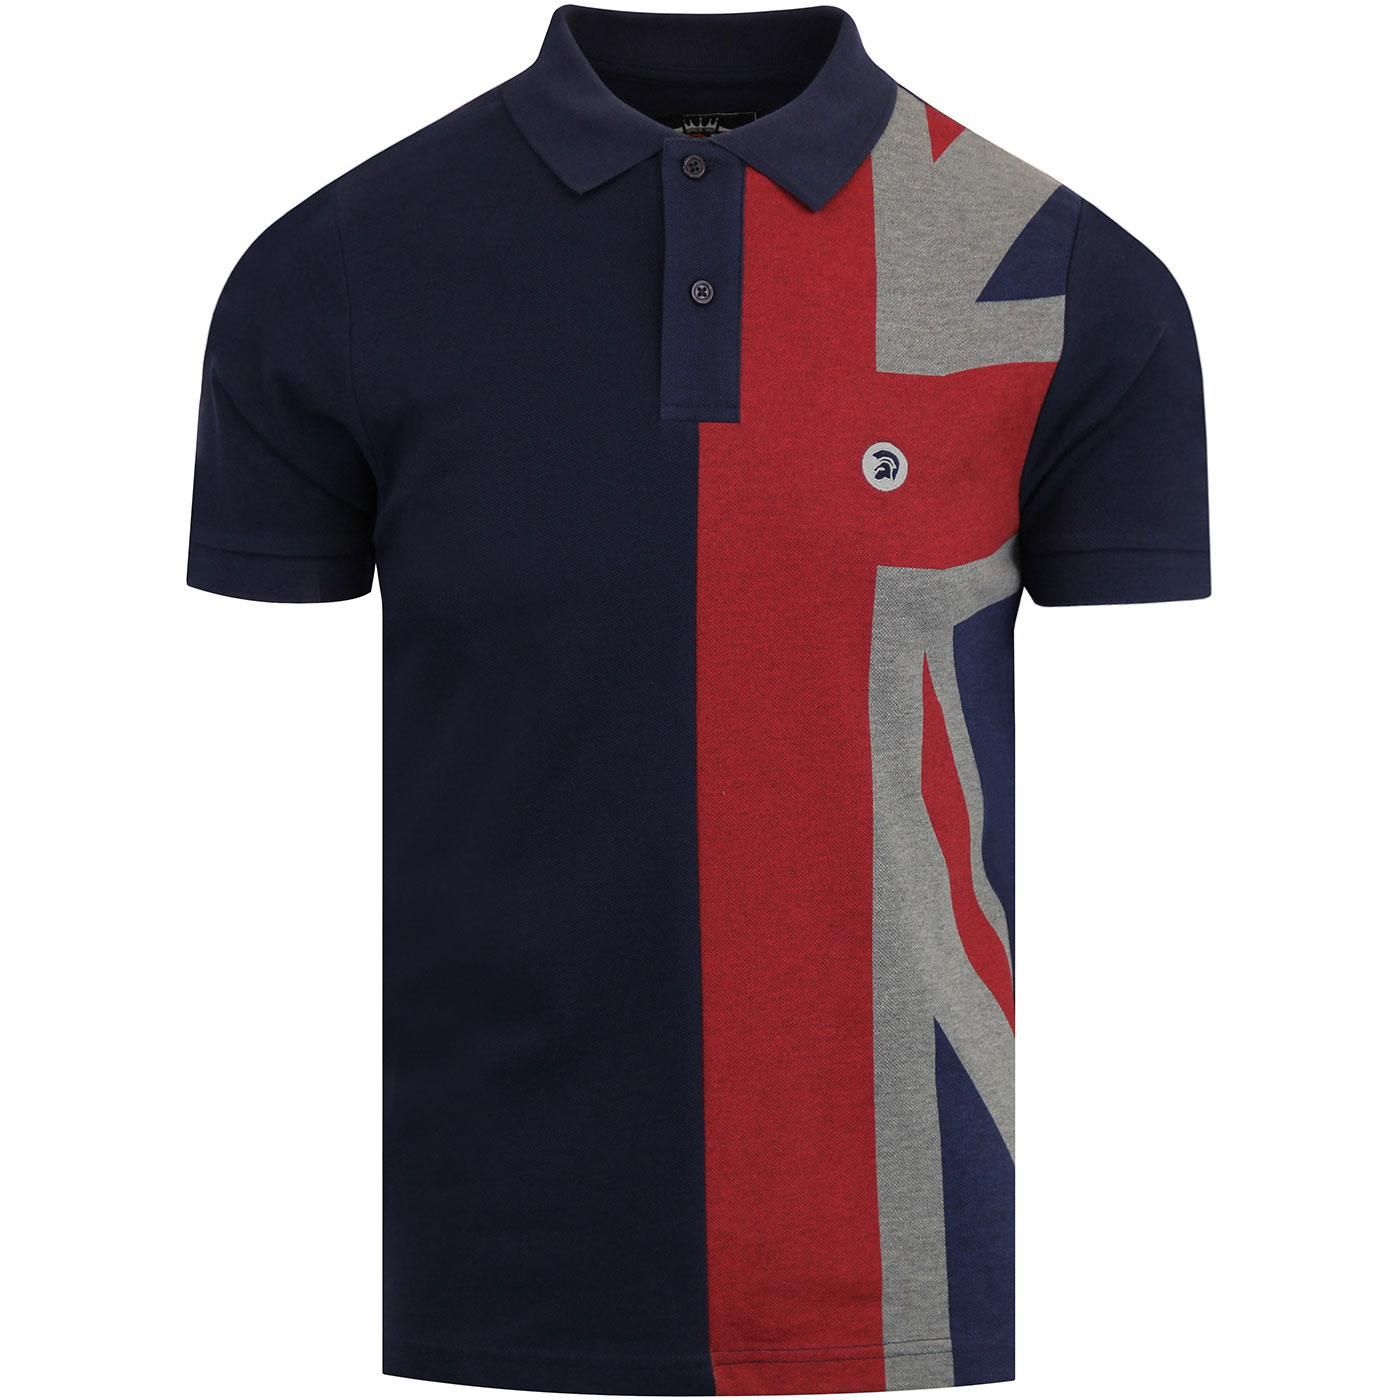 TROJAN RECORDS Union Jack Panel Pique Polo - Navy